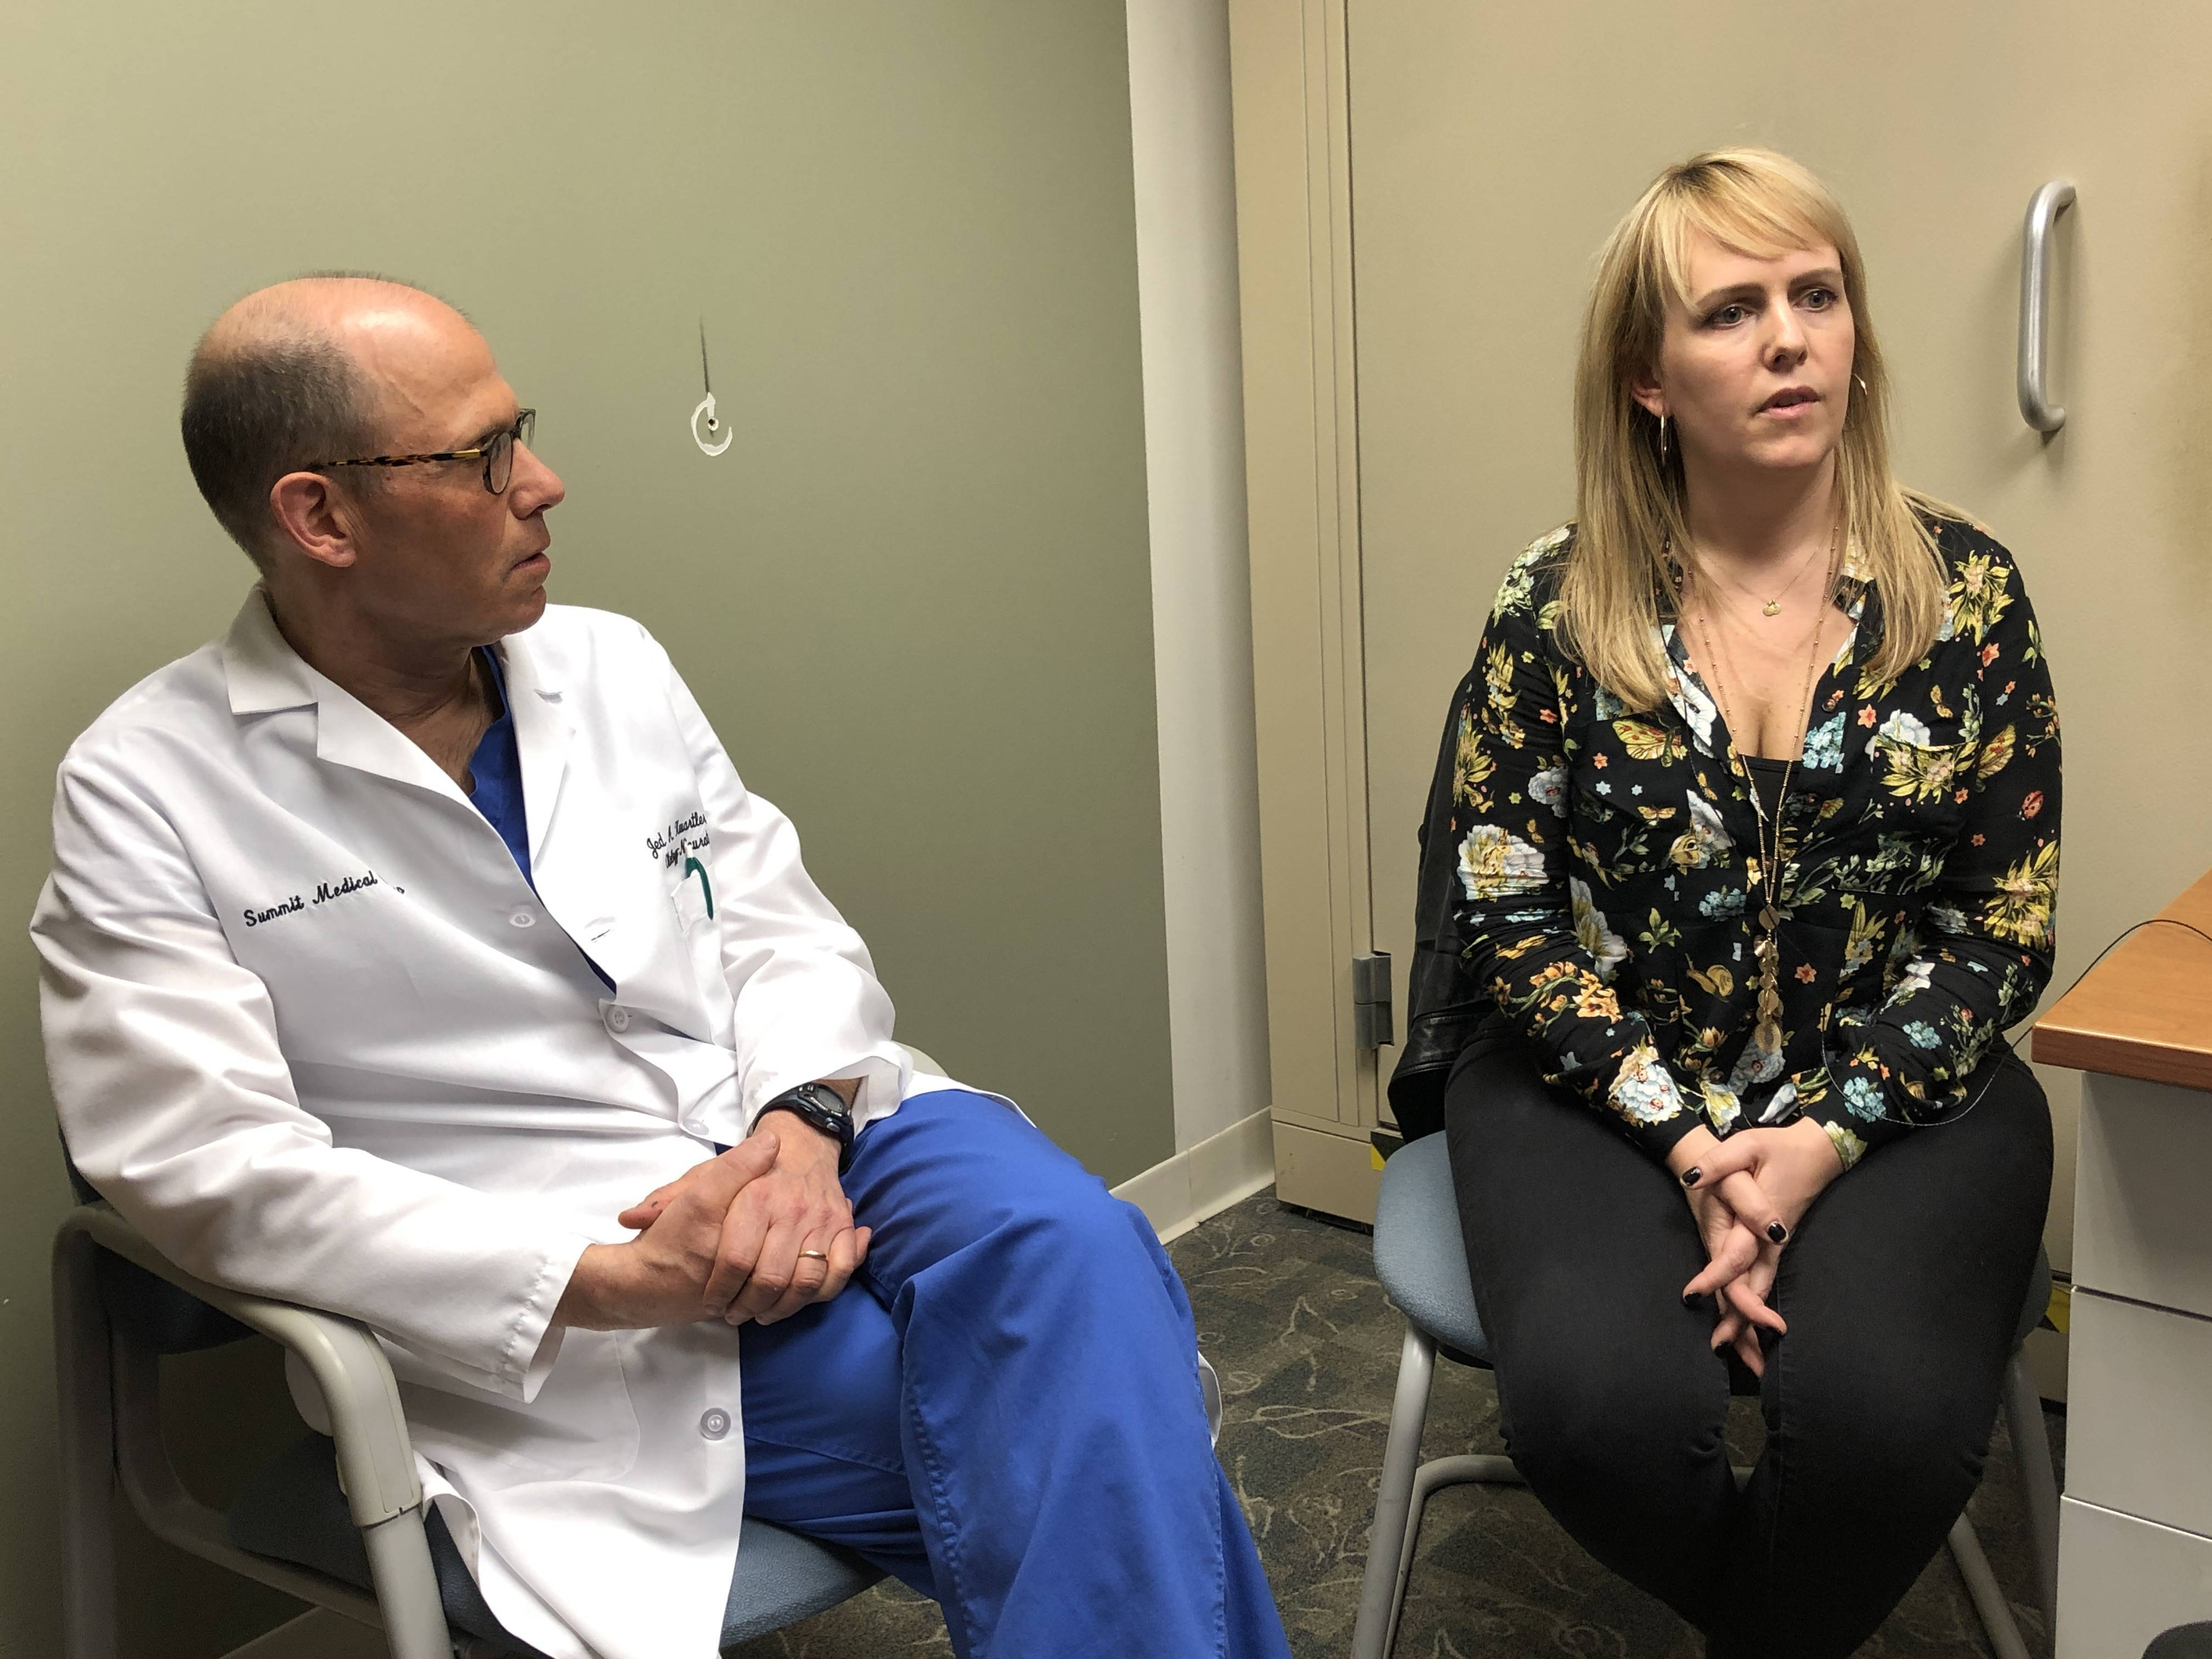 Dr. Jed Kwartler, Director of Otology/Neurotology, Summit Medical Group, and Joan Rekemeir of Fanwood